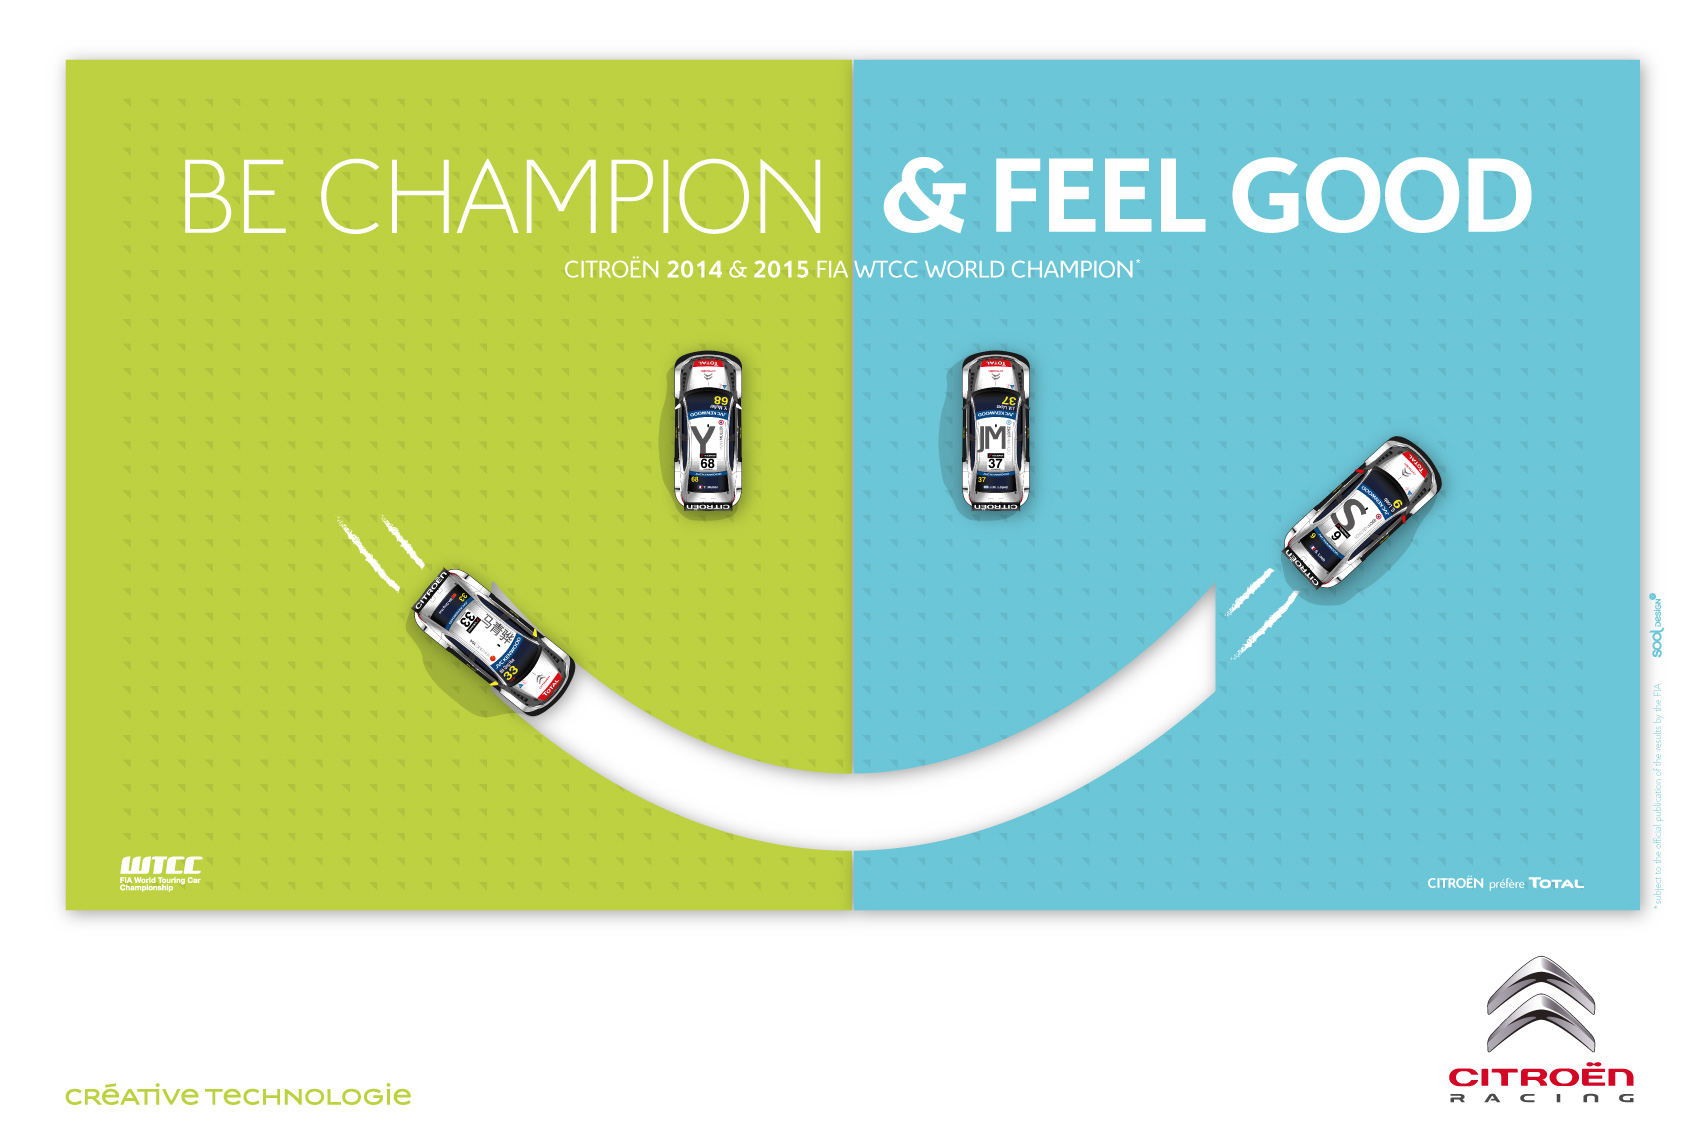 Affiche citroen feel good champion 2015